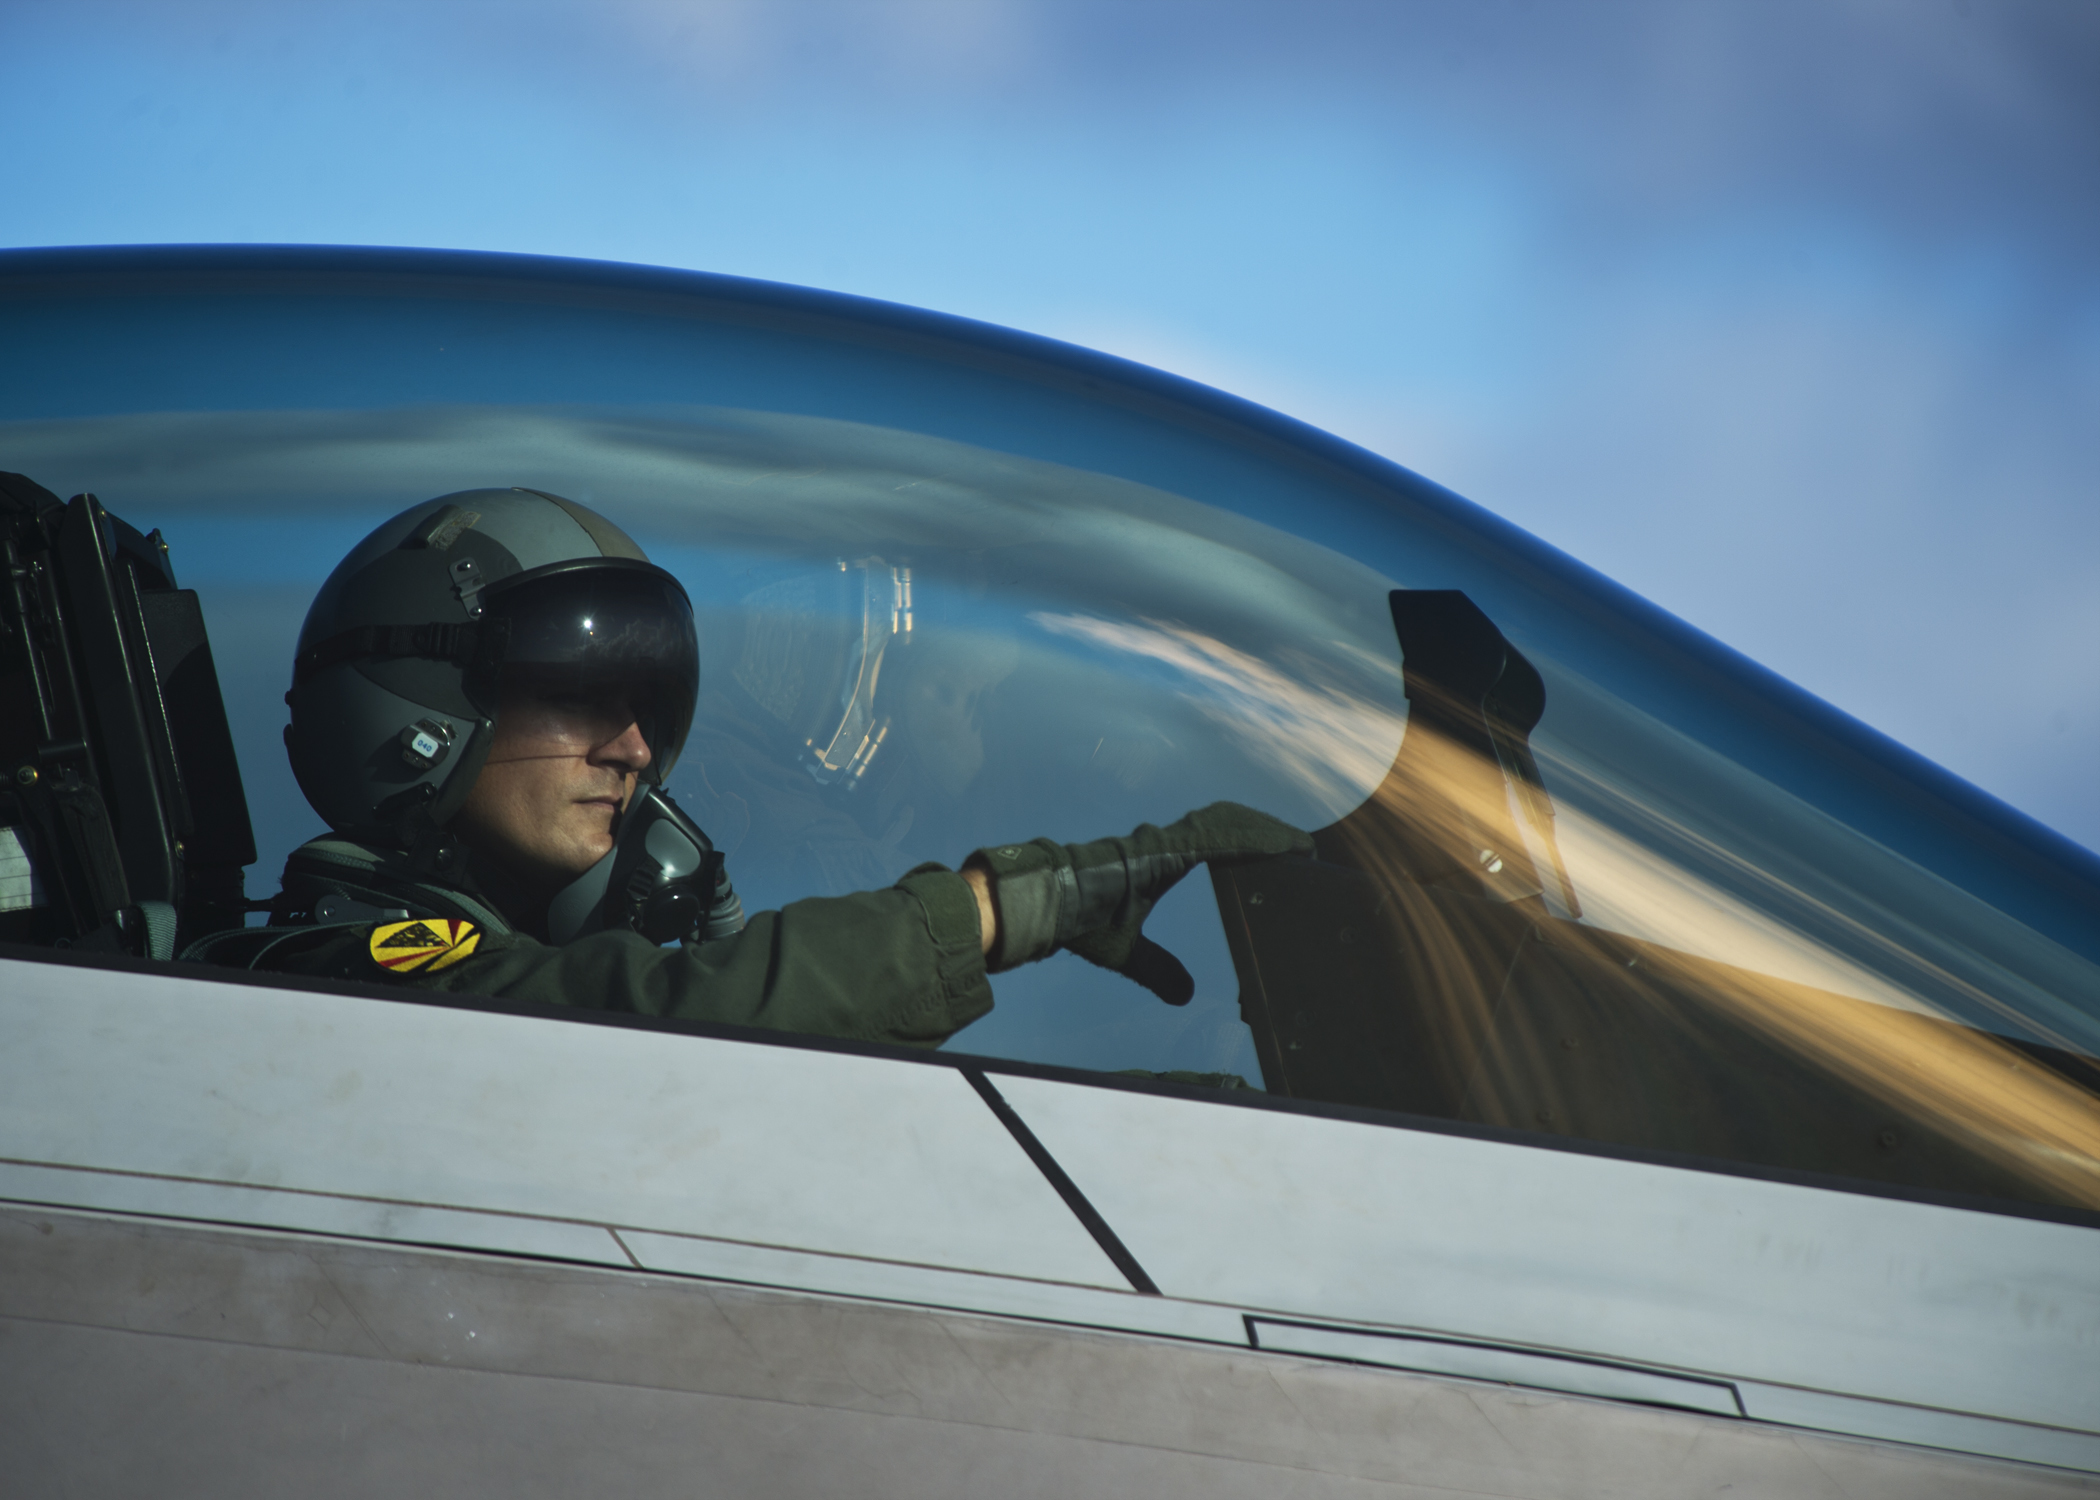 A pilot from the Hawaiian Raptors awaits the conclusion of an end of runway inspection of the F-22 Raptor on Joint Base Pearl Harbor-Hickam, Hawaii, April 20, 2015. The F-22 possesses a sophisticated sensor suite allowing the pilot to track, identify, shoot and kill air-to-air threats before being detected. Significant advances in cockpit design and sensor fusion improve the pilot's situational awareness. (U.S. Air Force photo by Tech. Sgt. Aaron Oelrich/Released)